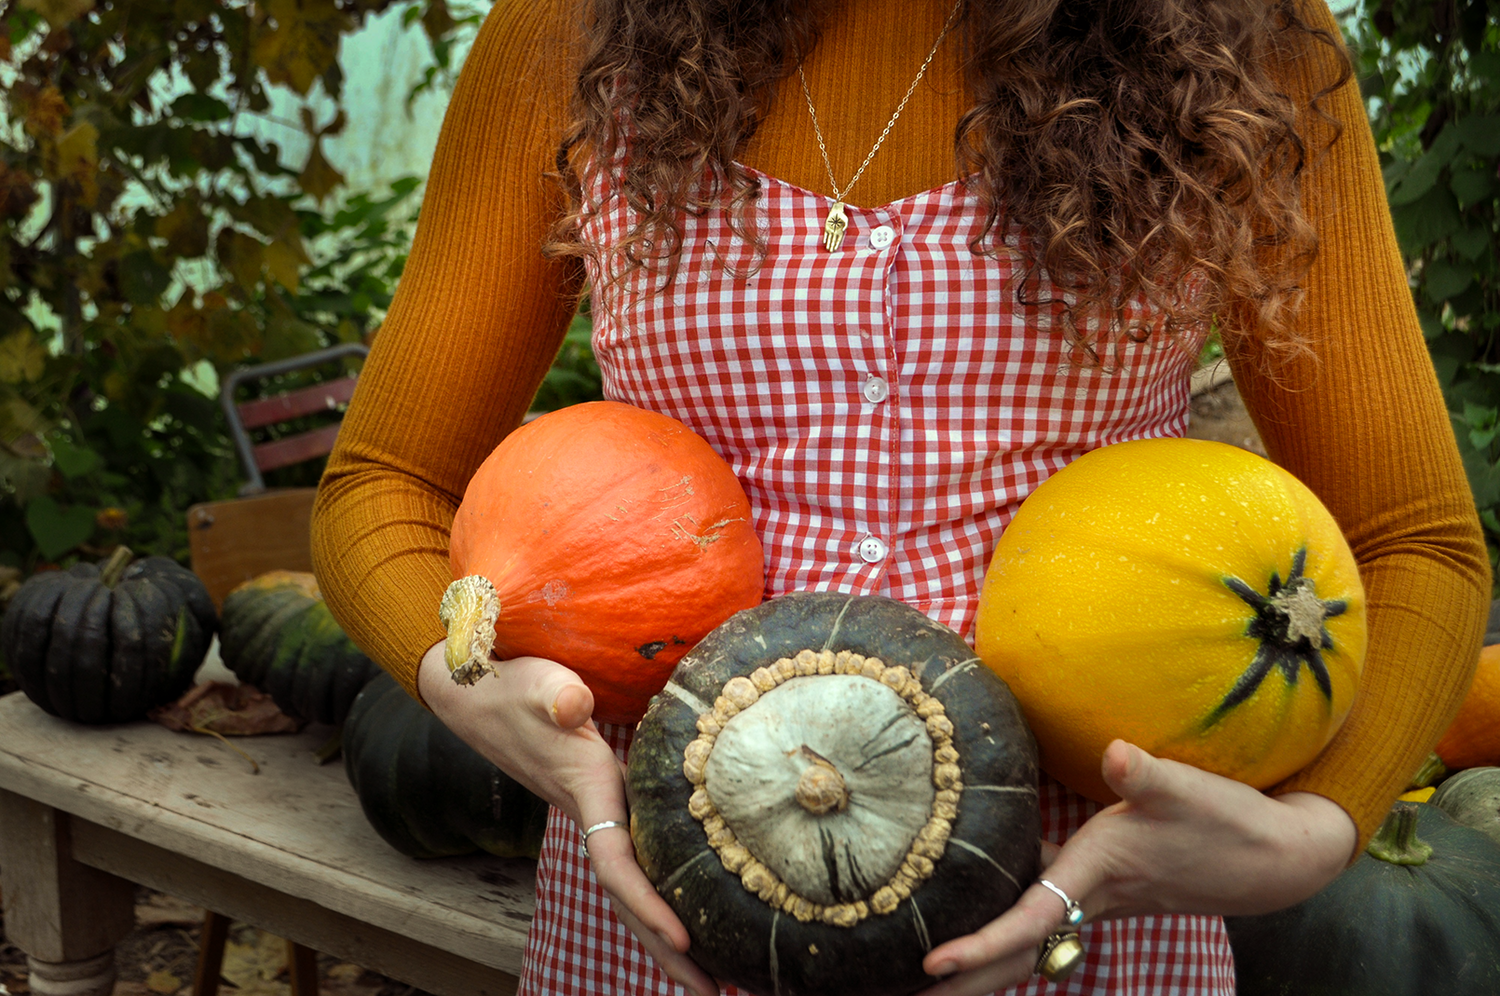 Handful+of+Magic+Necklace+by+Good+Looking+Objects+modeled+by+The+Pale+Female+Autumnal-small.png